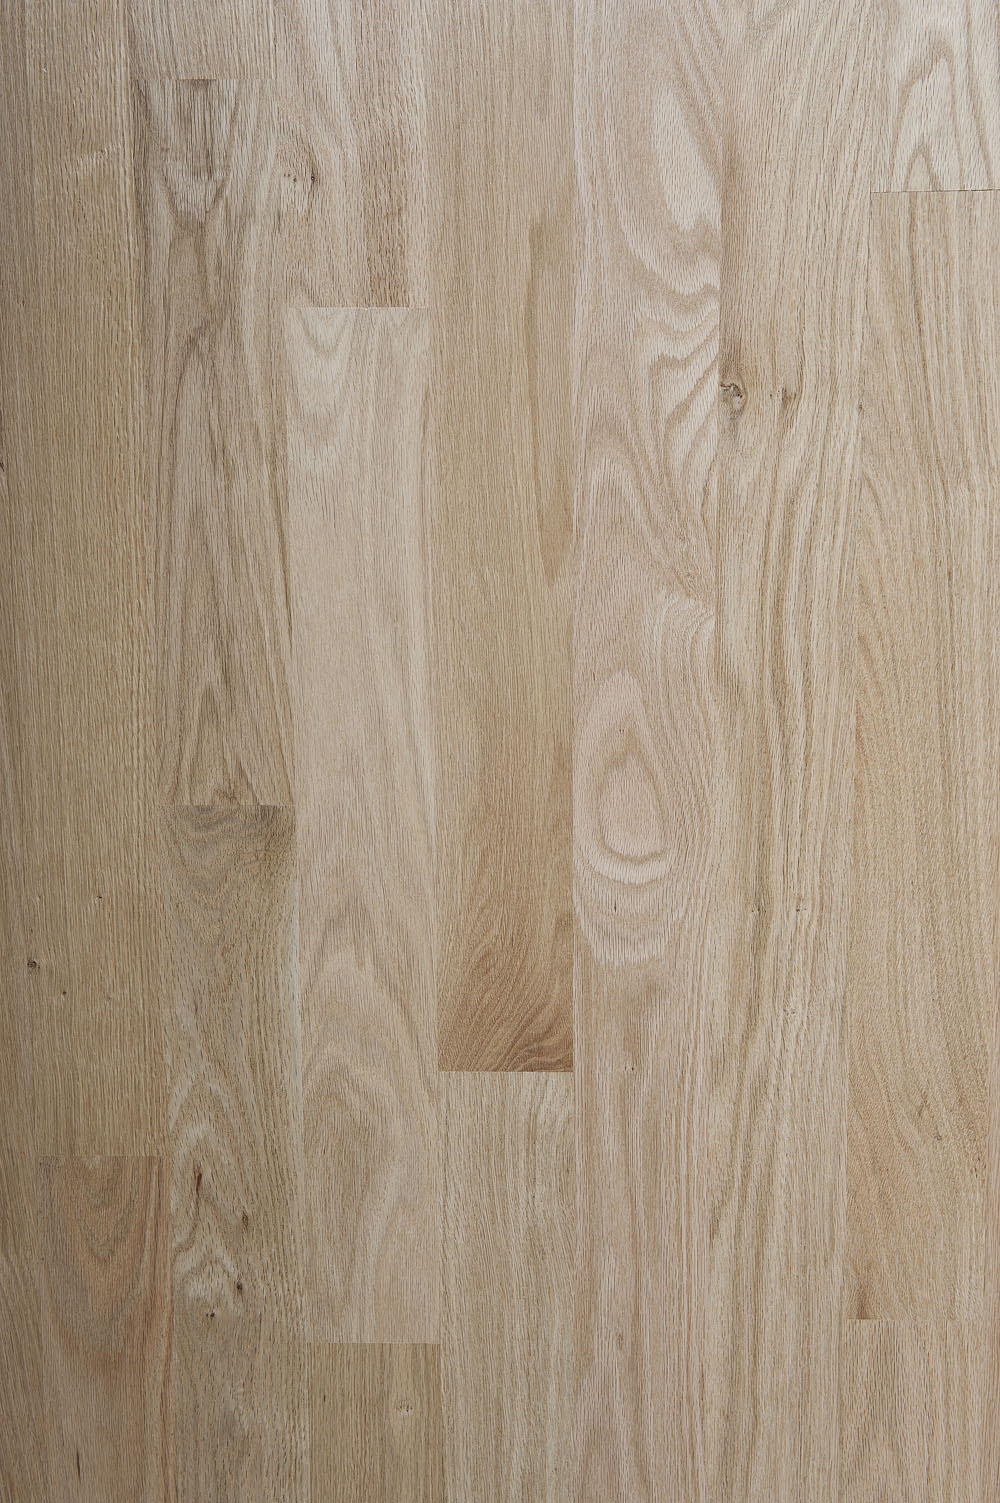 Northern red oak species page for Red oak flooring